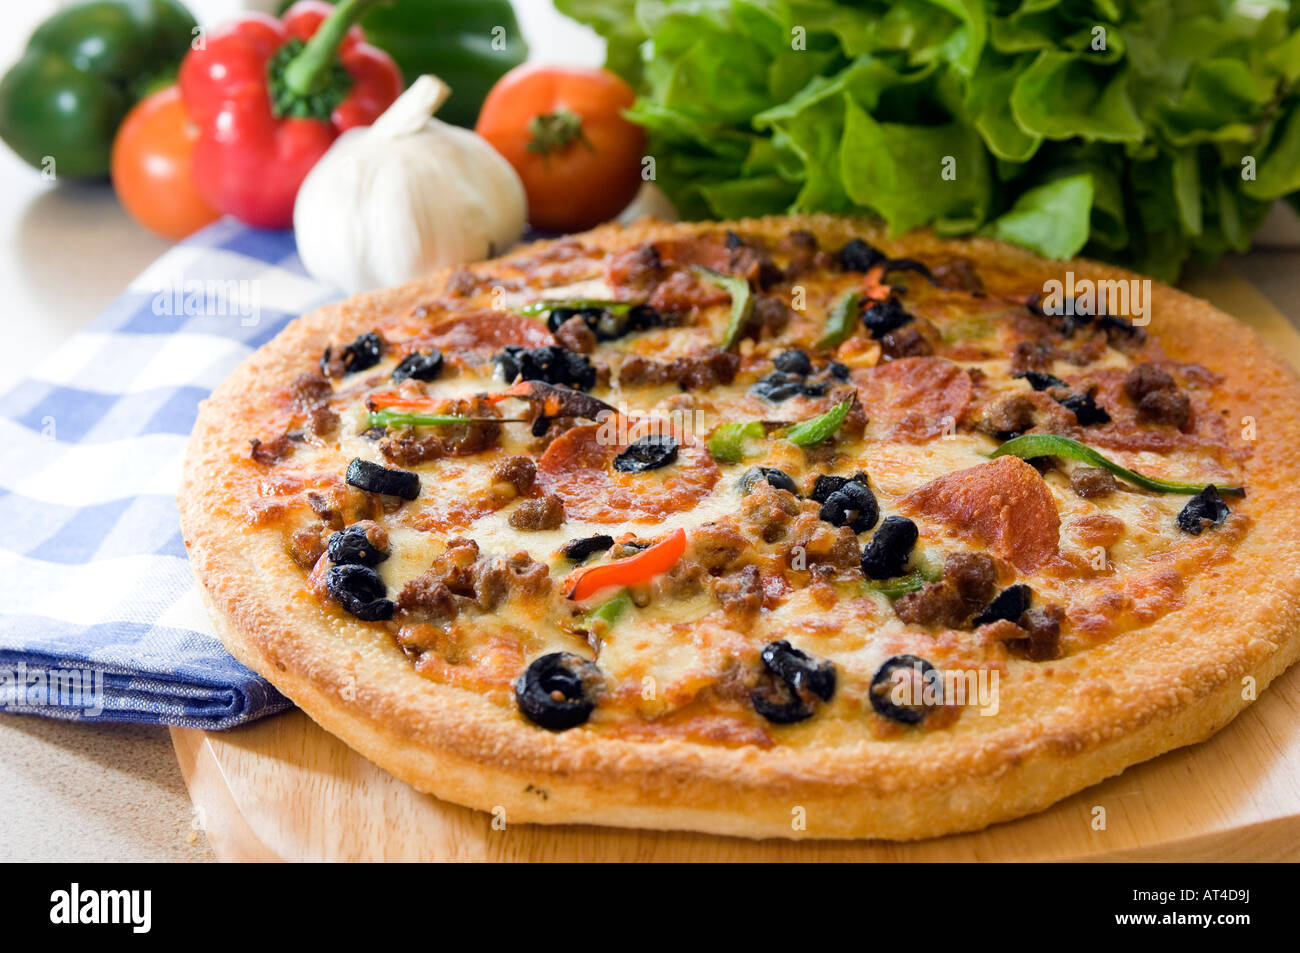 A hot Pizza pie presented with fresh produce on a wooden platter - Stock Image